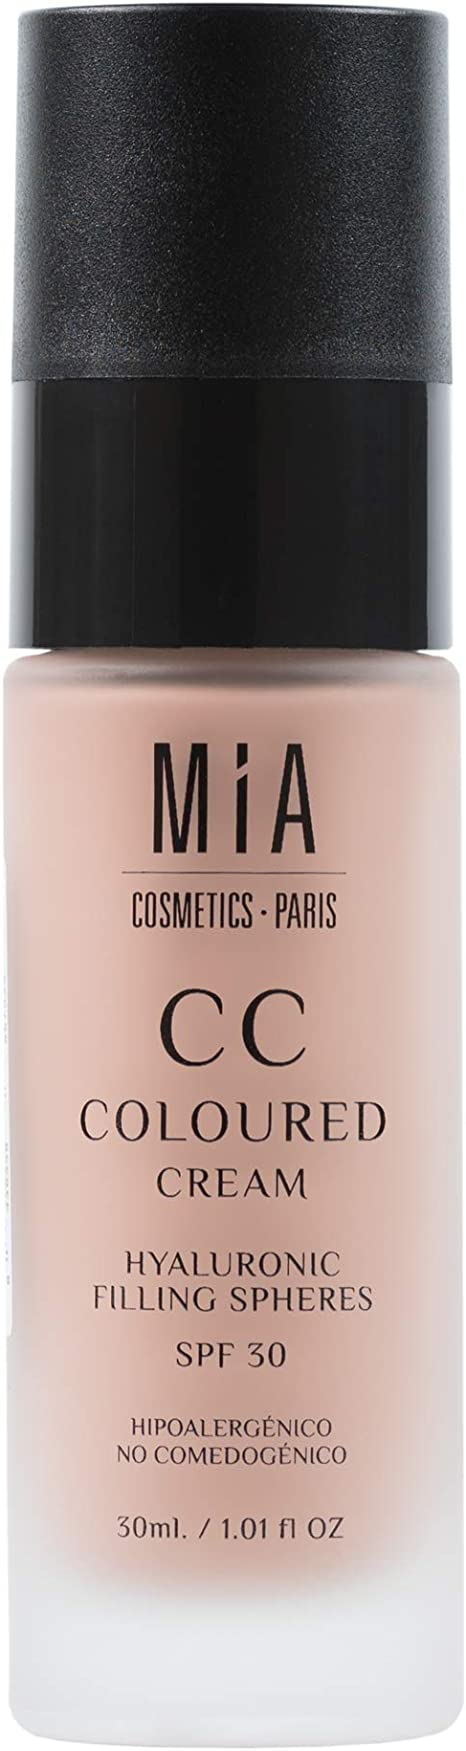 Image of Mia Cosmetics-Paris - CC Coloured Cream SPF 30, Dark, 30 ml